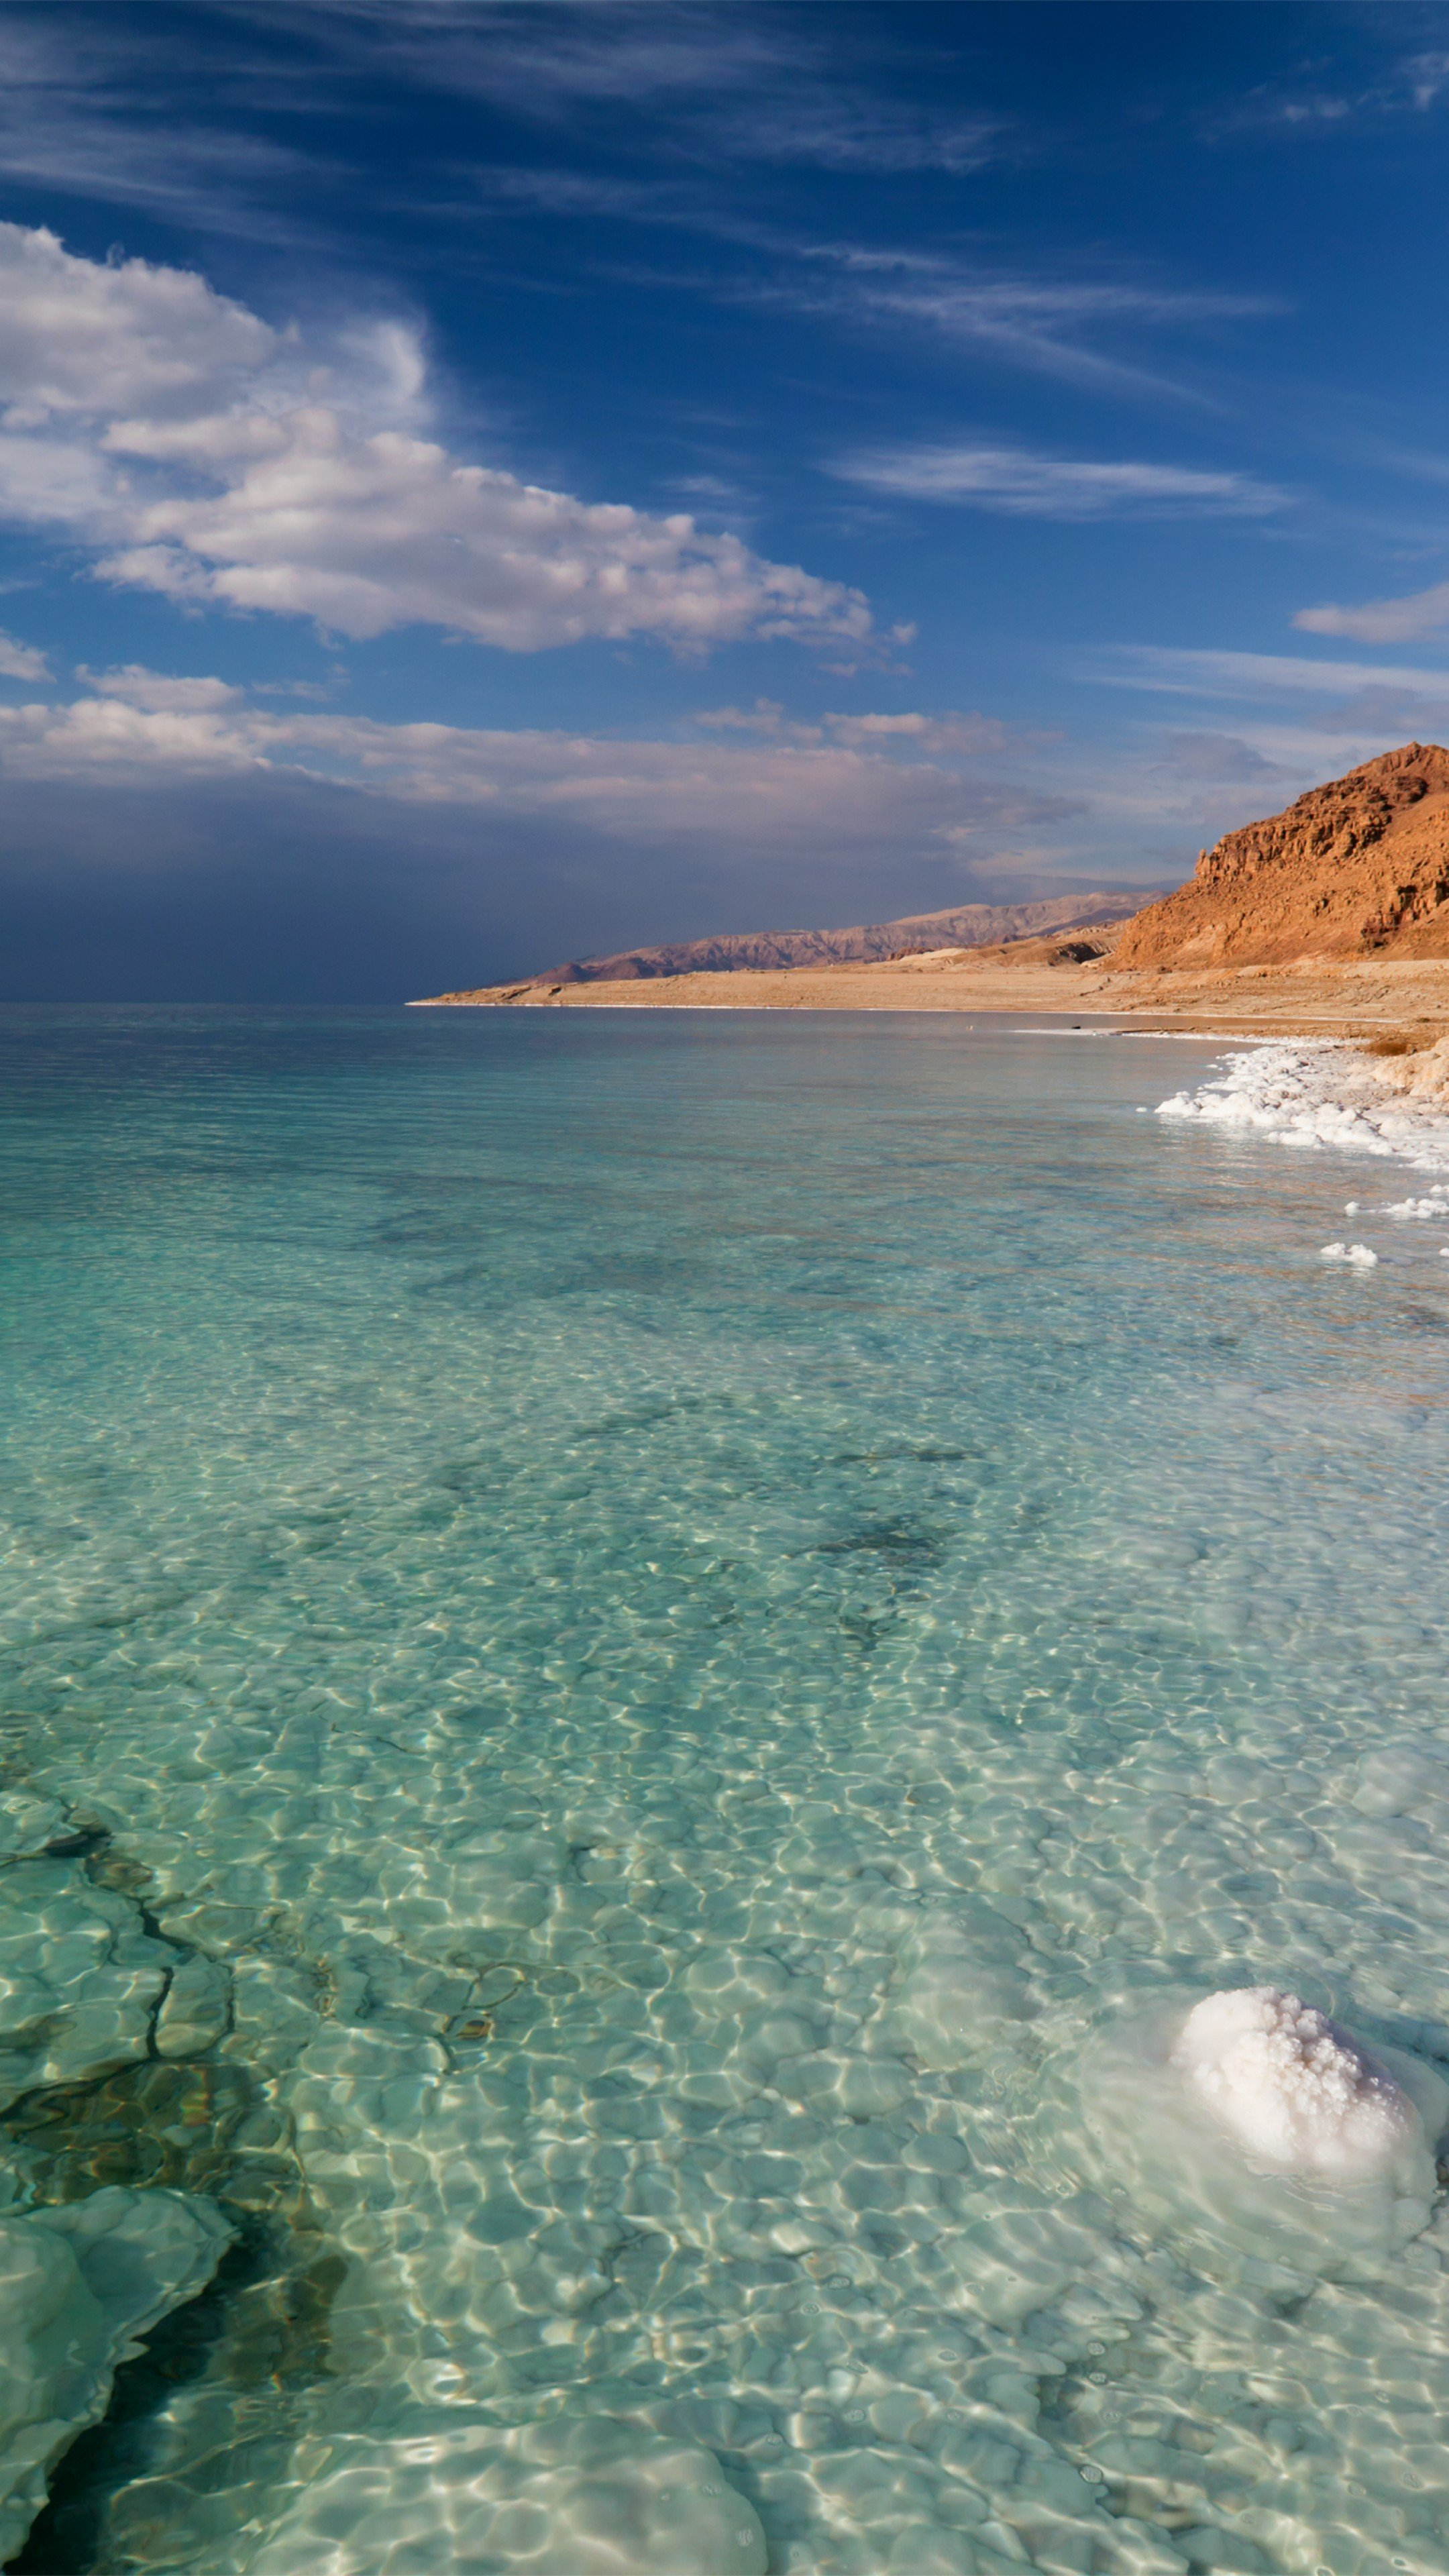 Wallpaper Dead Sea 5k 4k wallpaper Israel Palestine Jordan 2160x3840